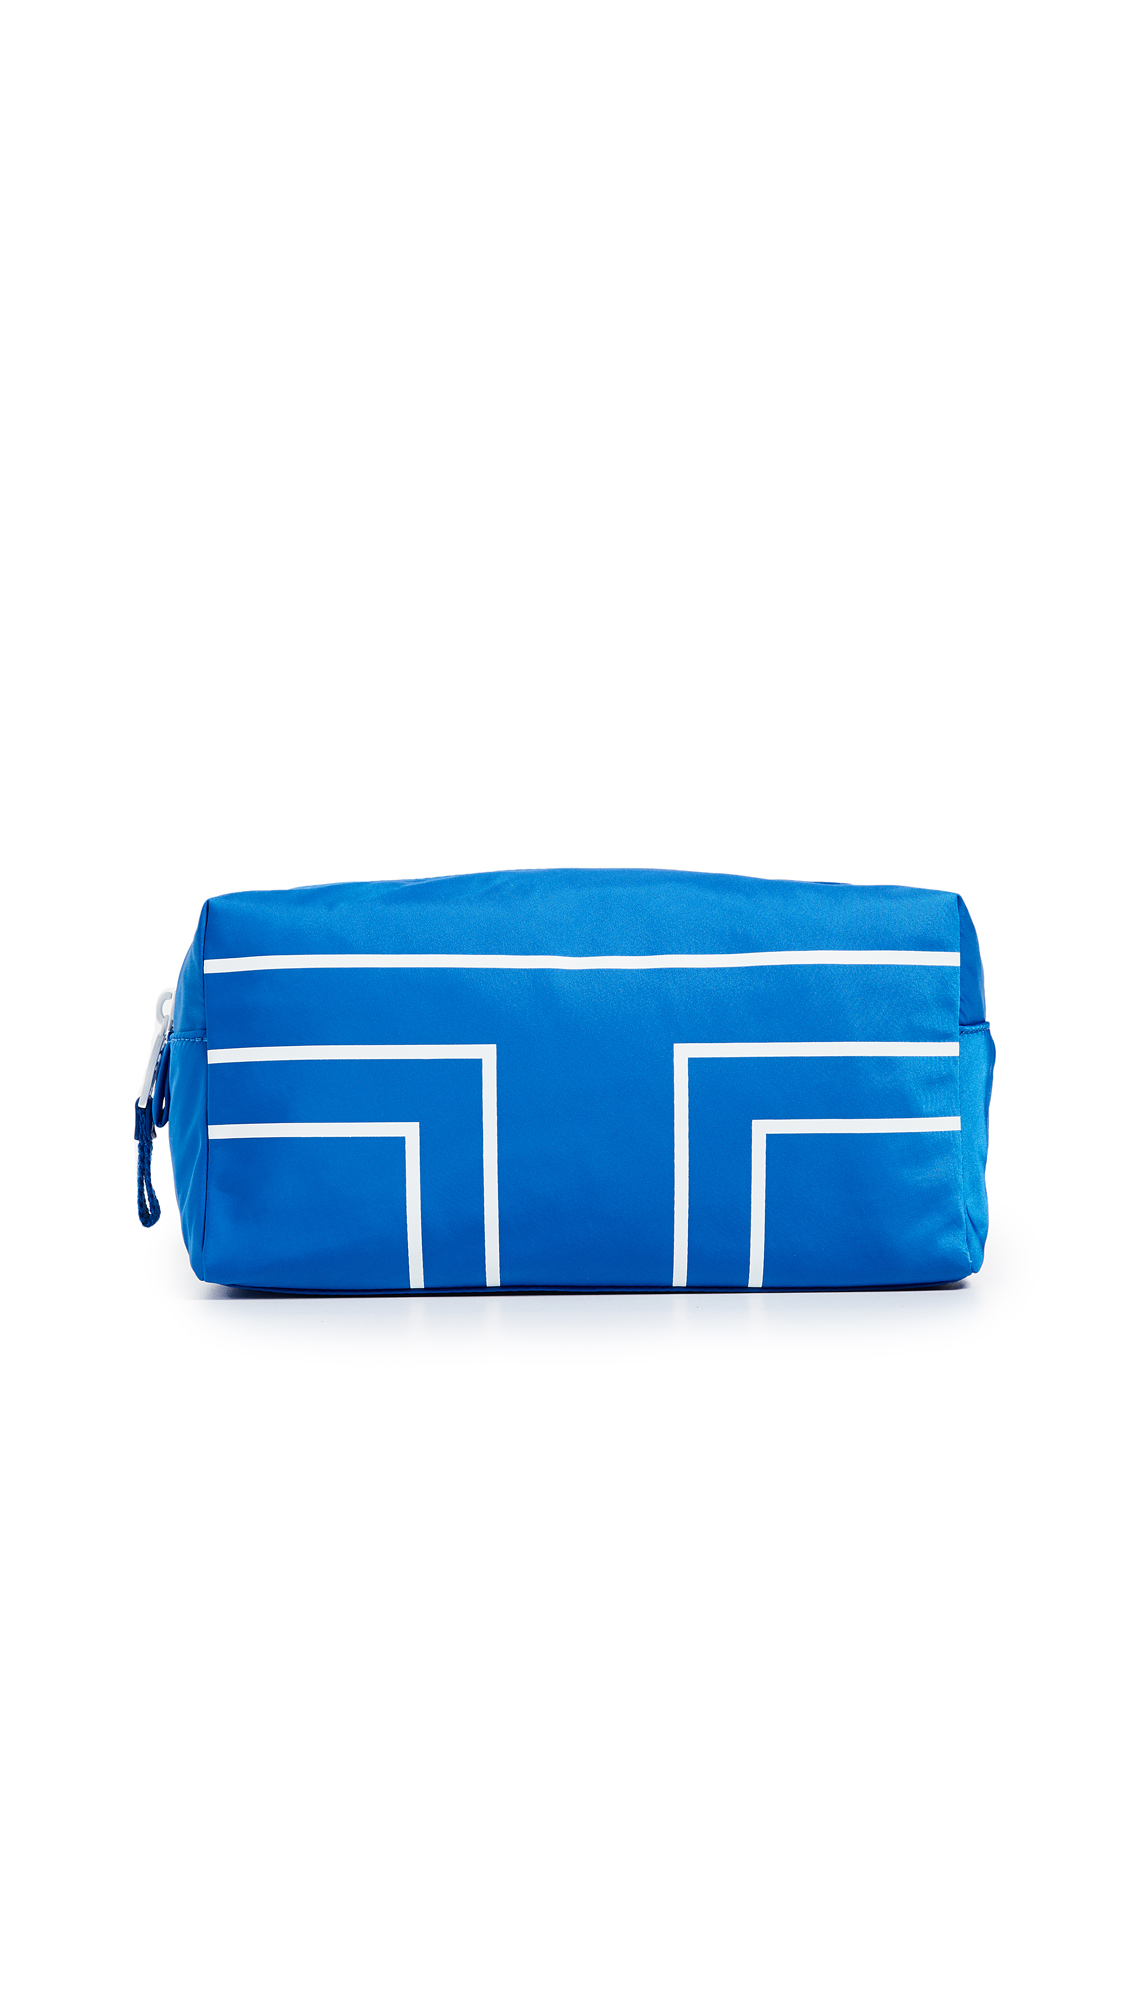 Multitask Cosmetic Bag, Galleria Blue